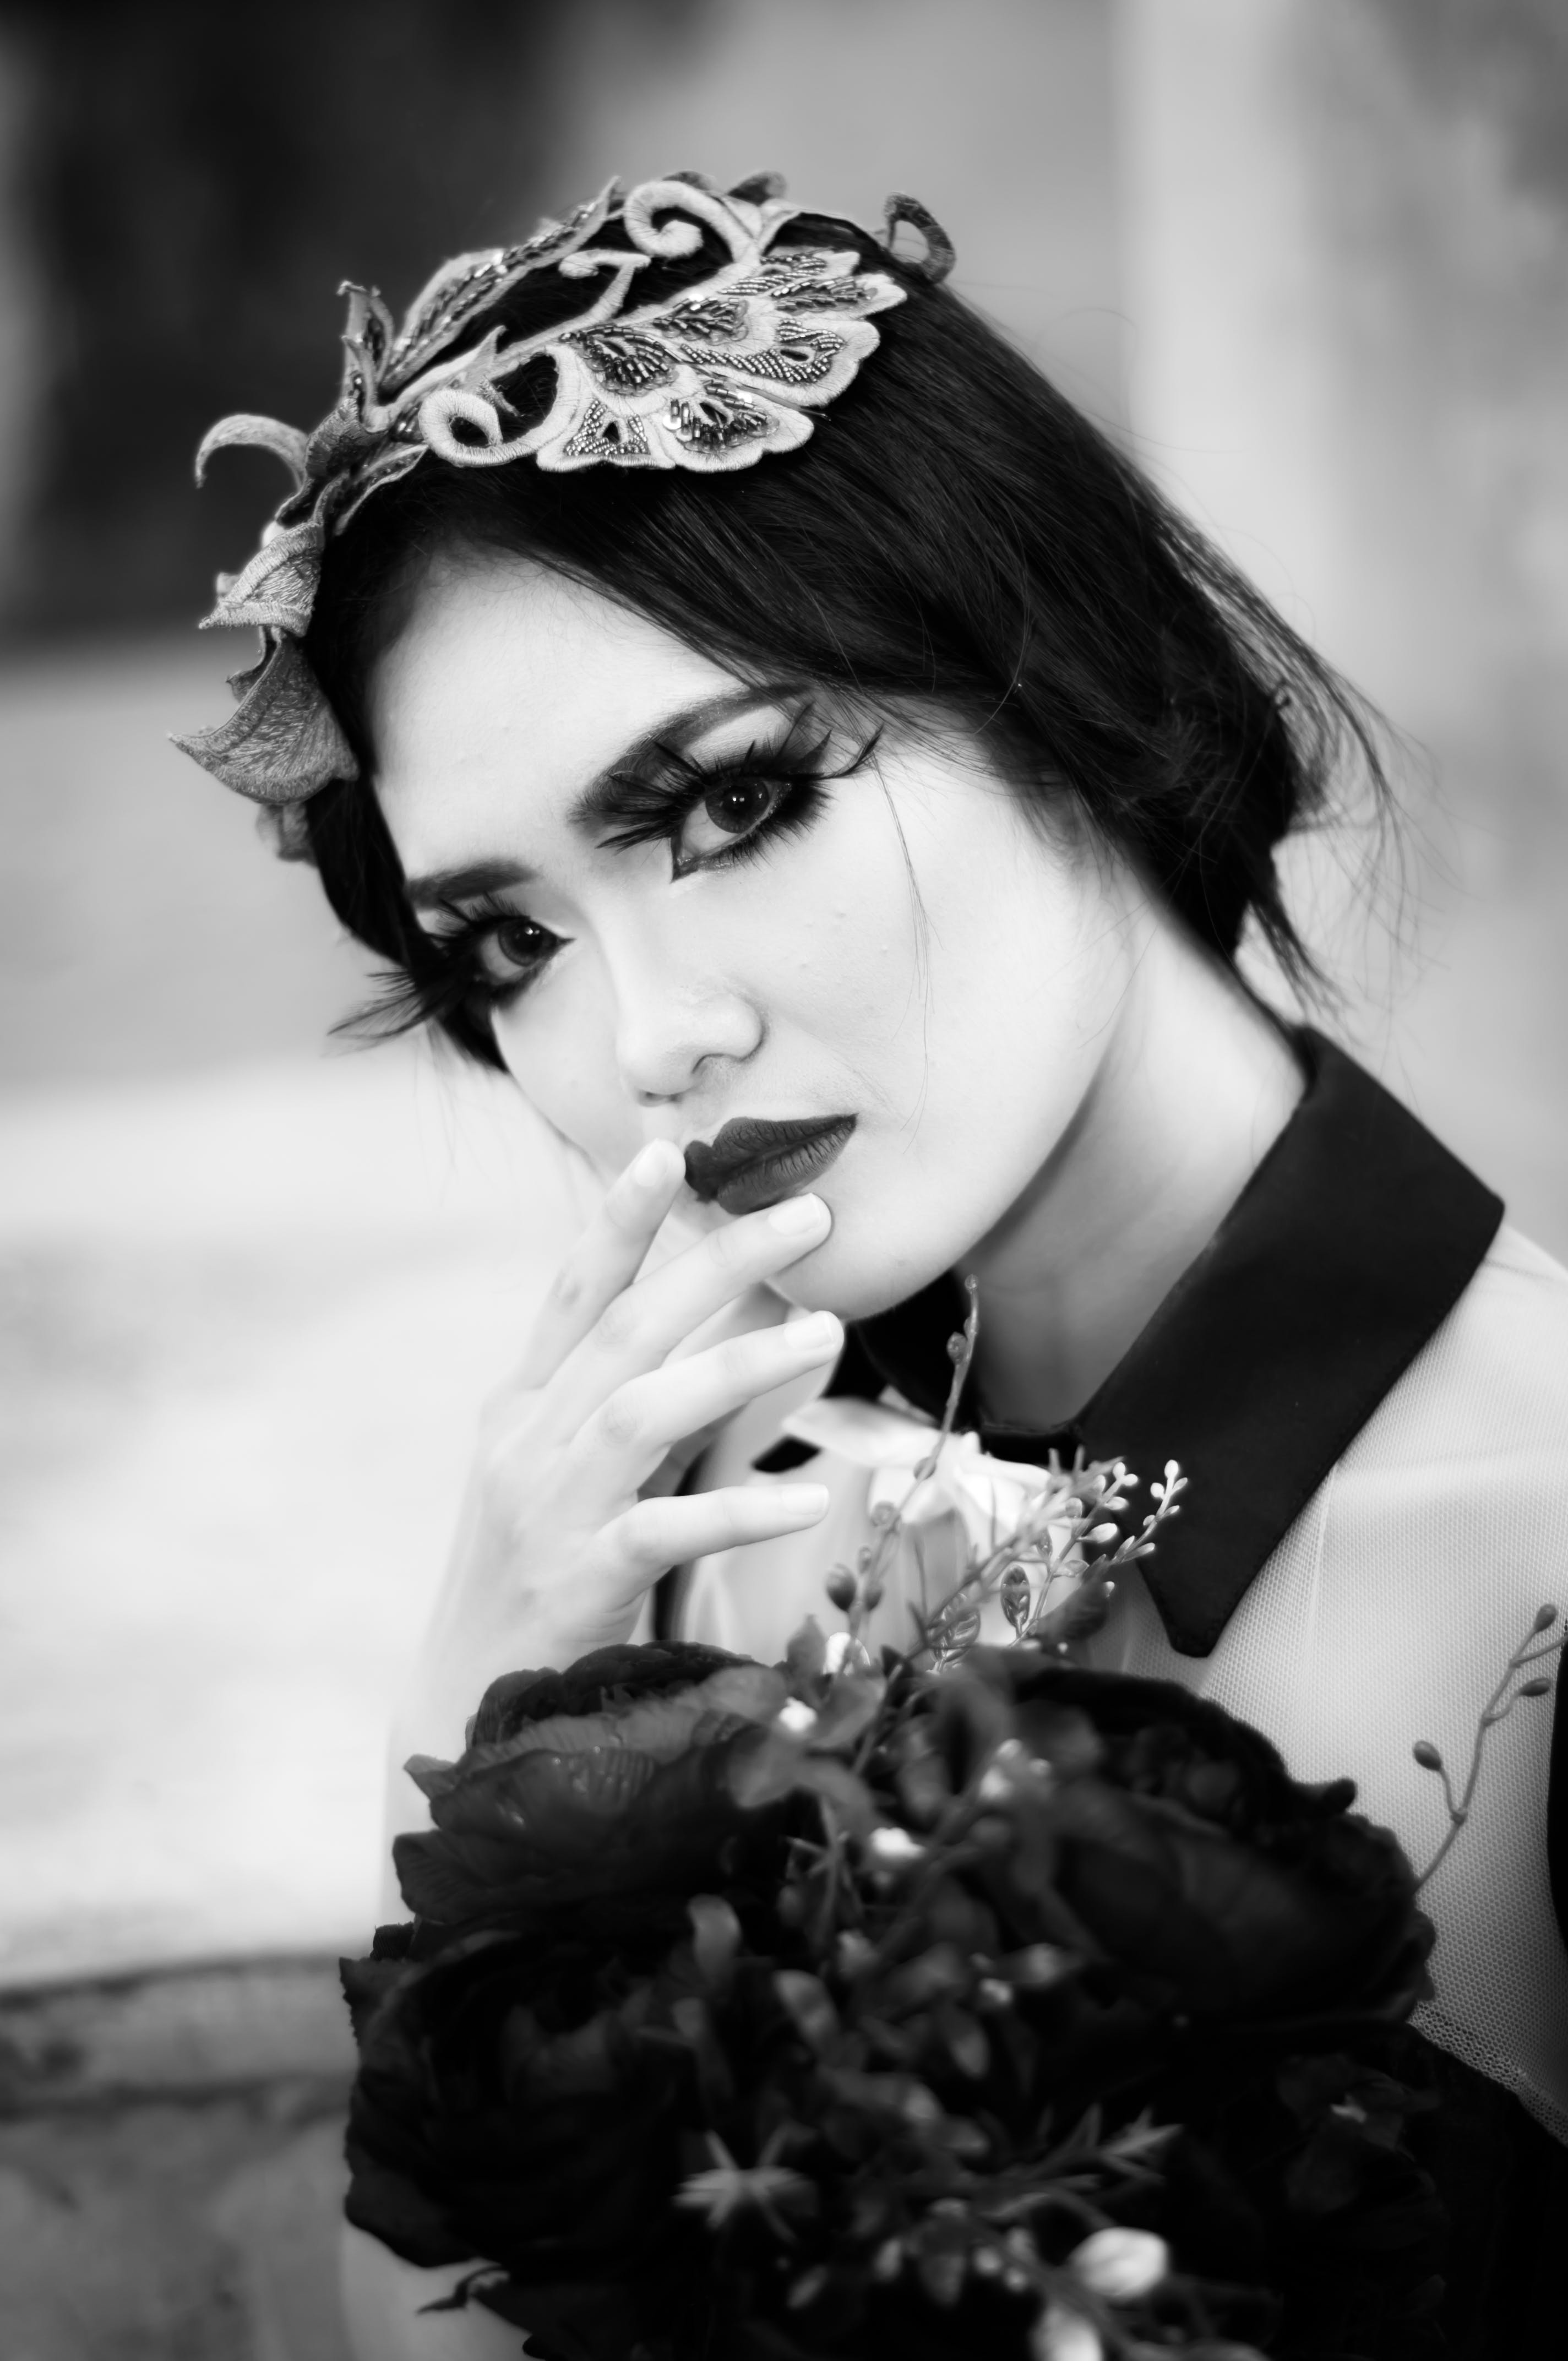 Grayscale Photo of Woman With Flowers